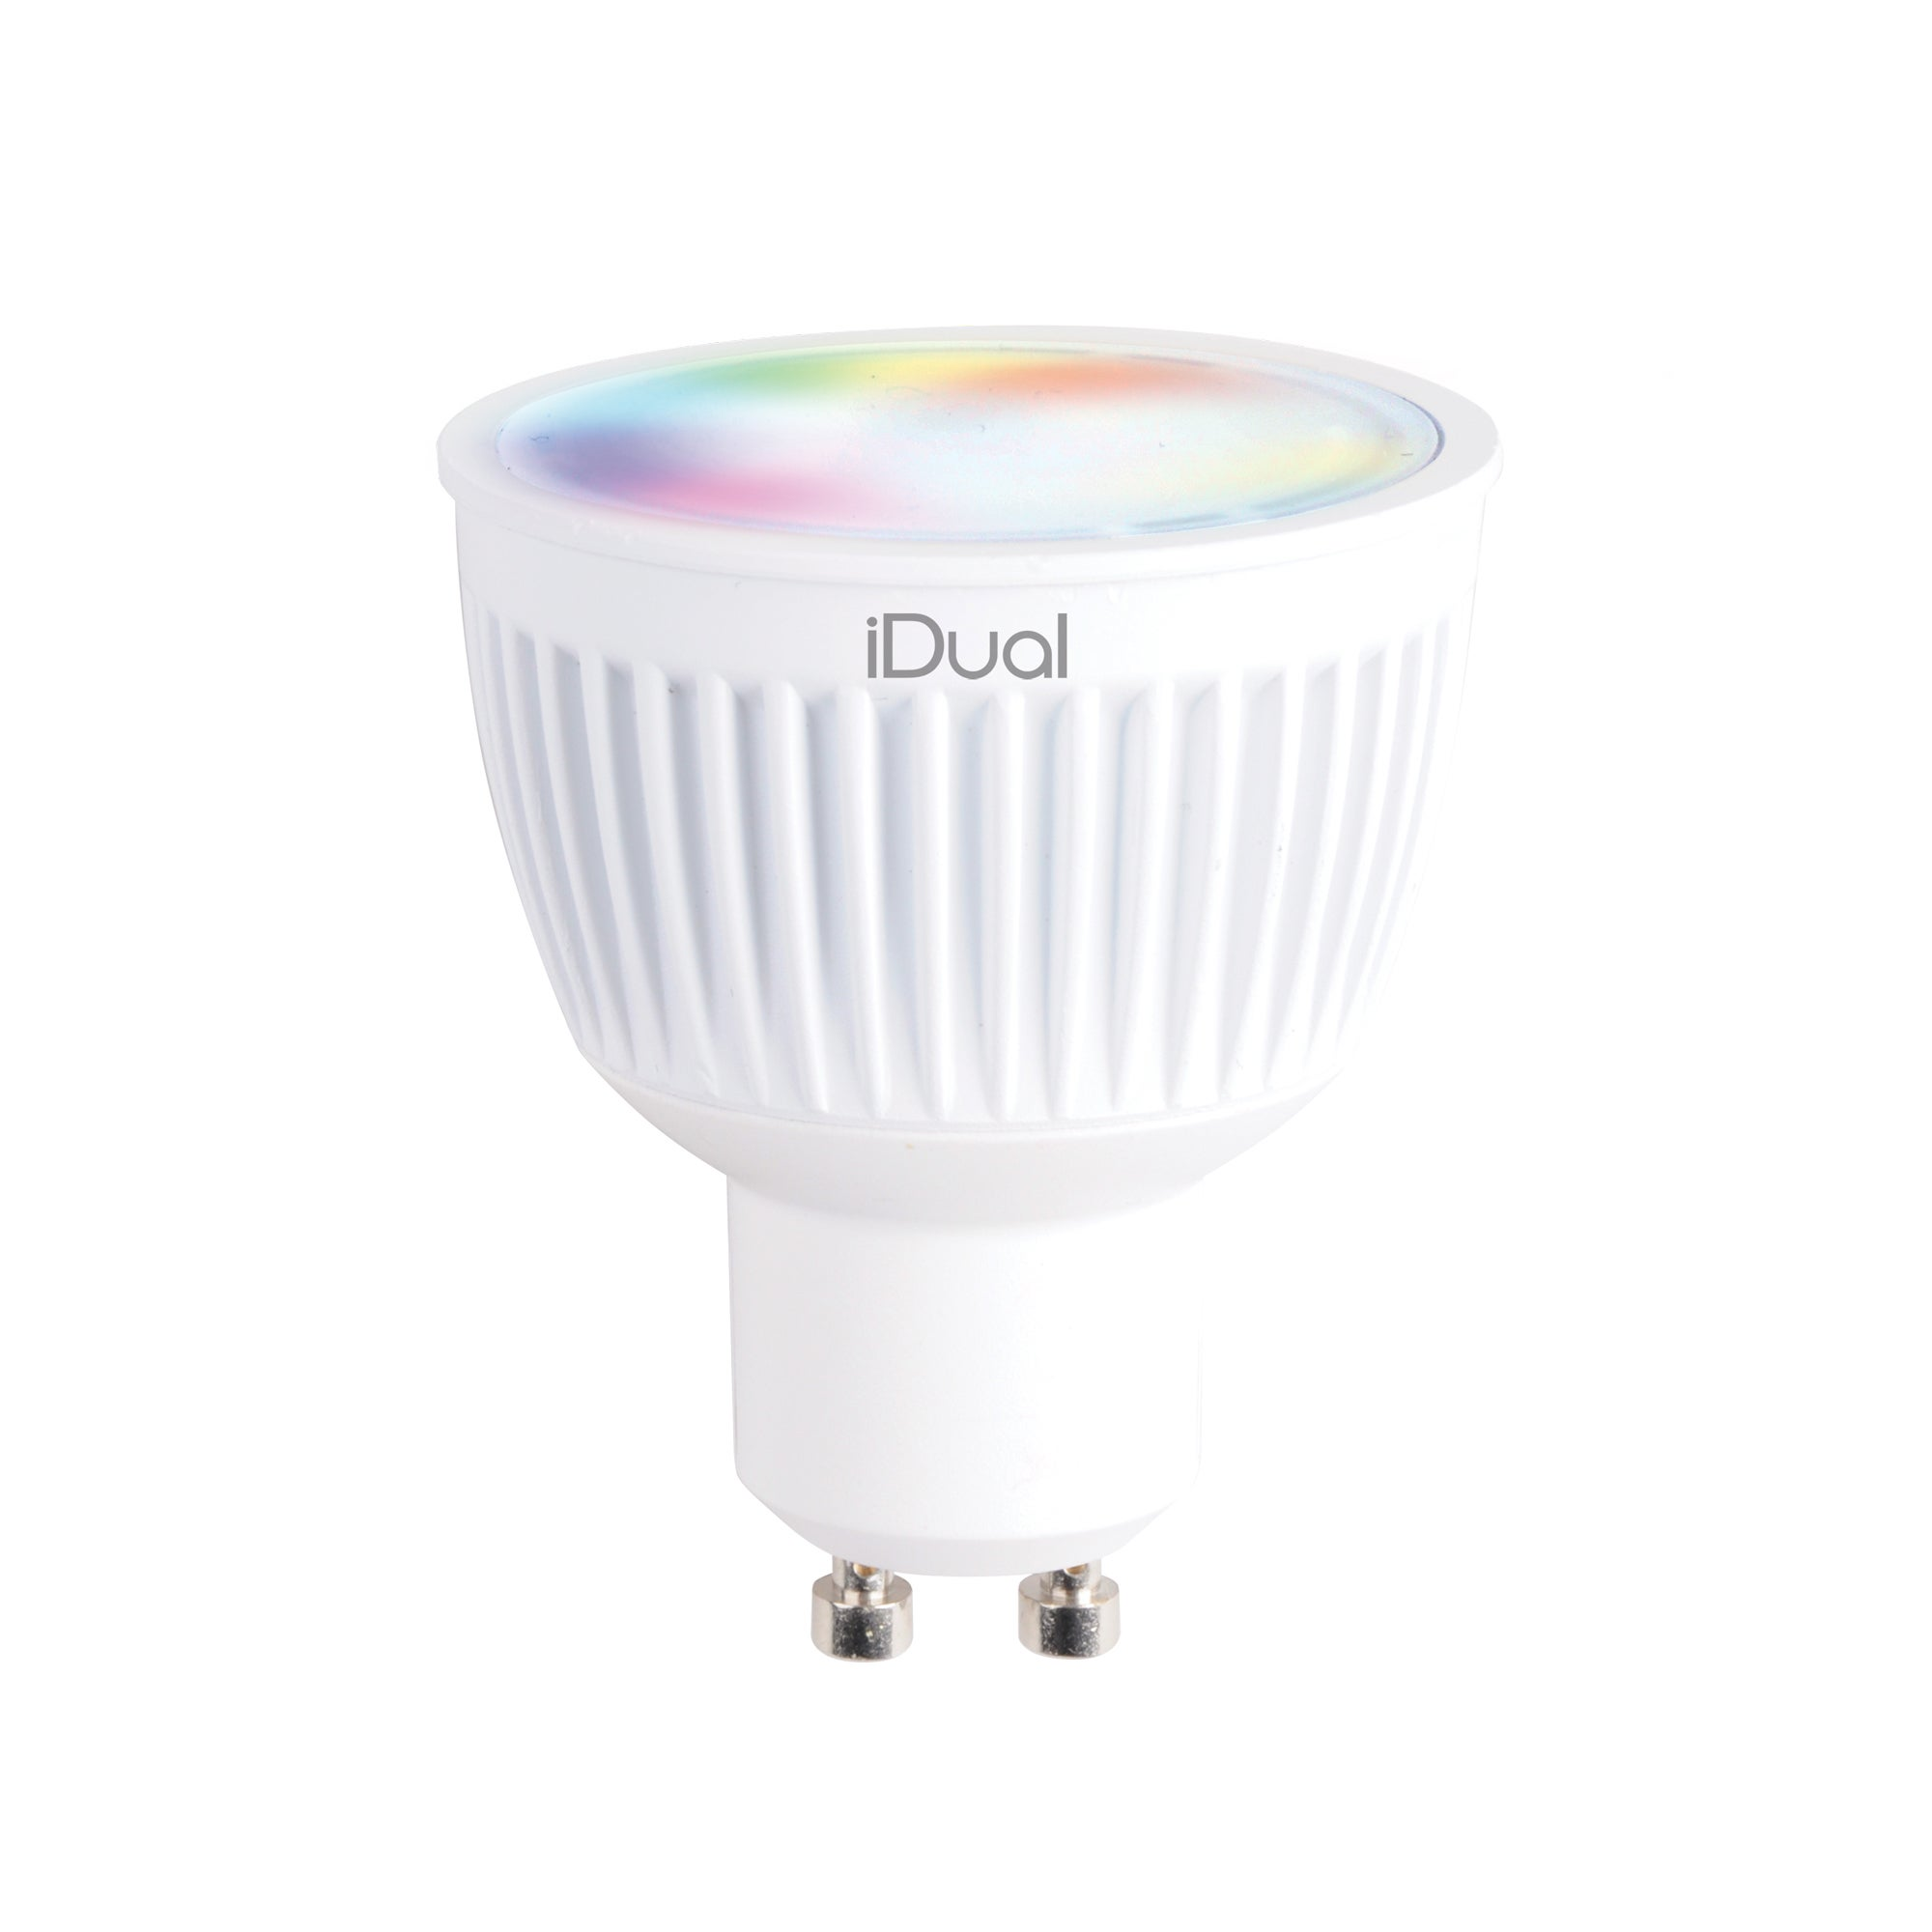 Photo of Idual 35 watt gu10 led bulb pack of 2 with remote control white